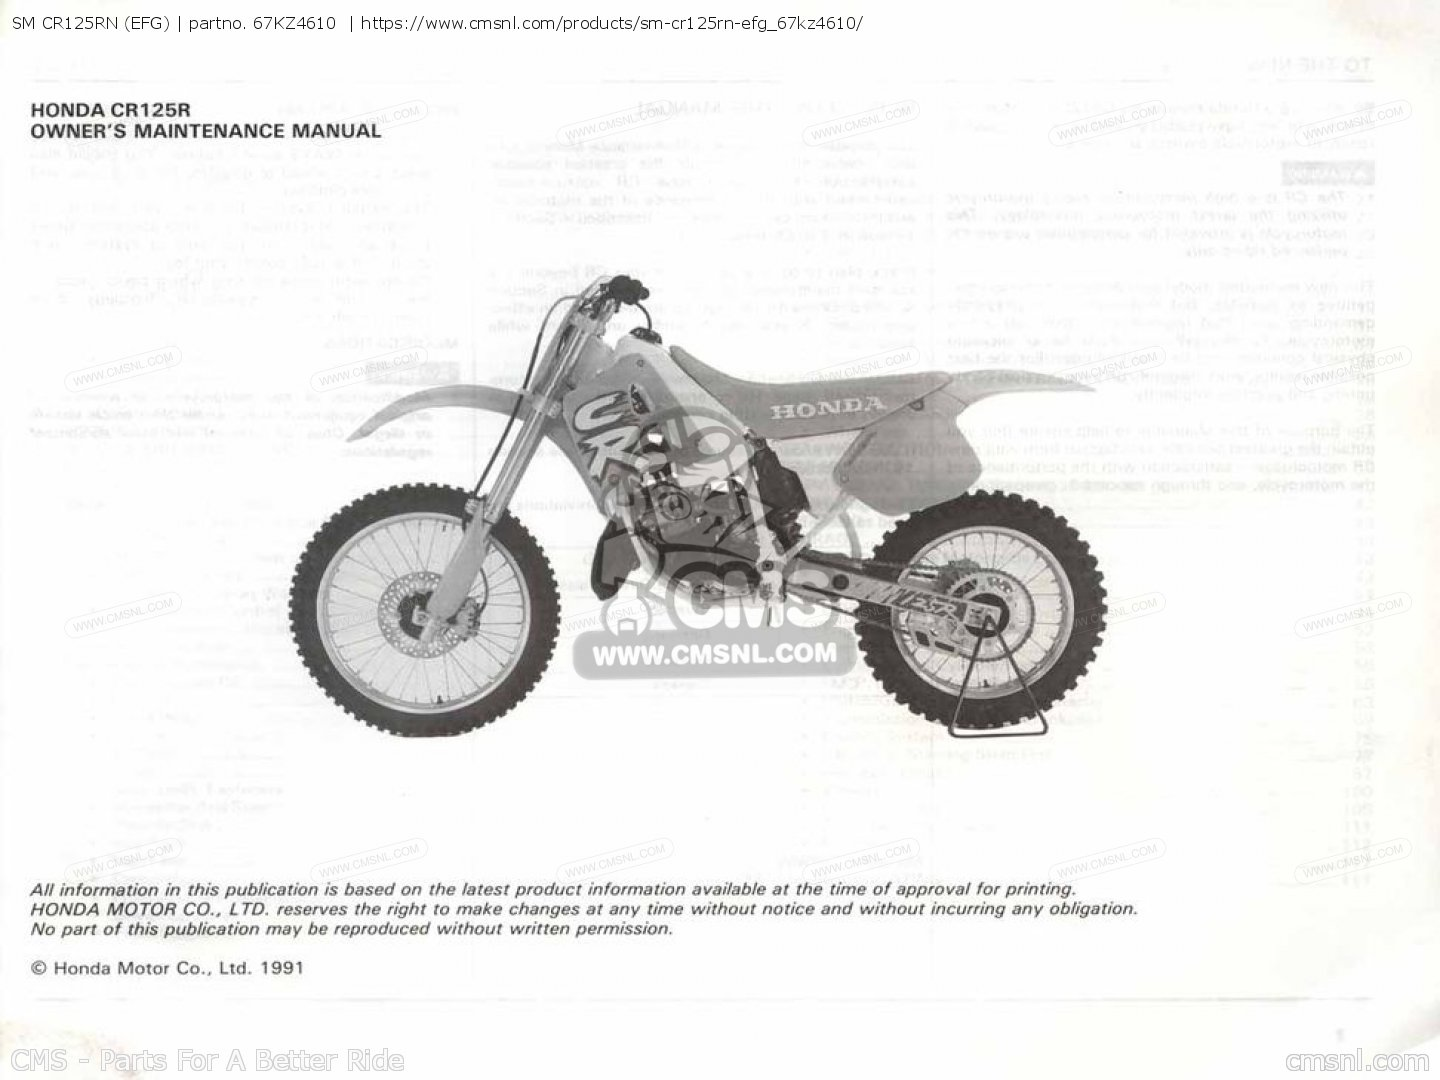 Sm Cr125rn (efg) Shop Manuals 67KZ4610